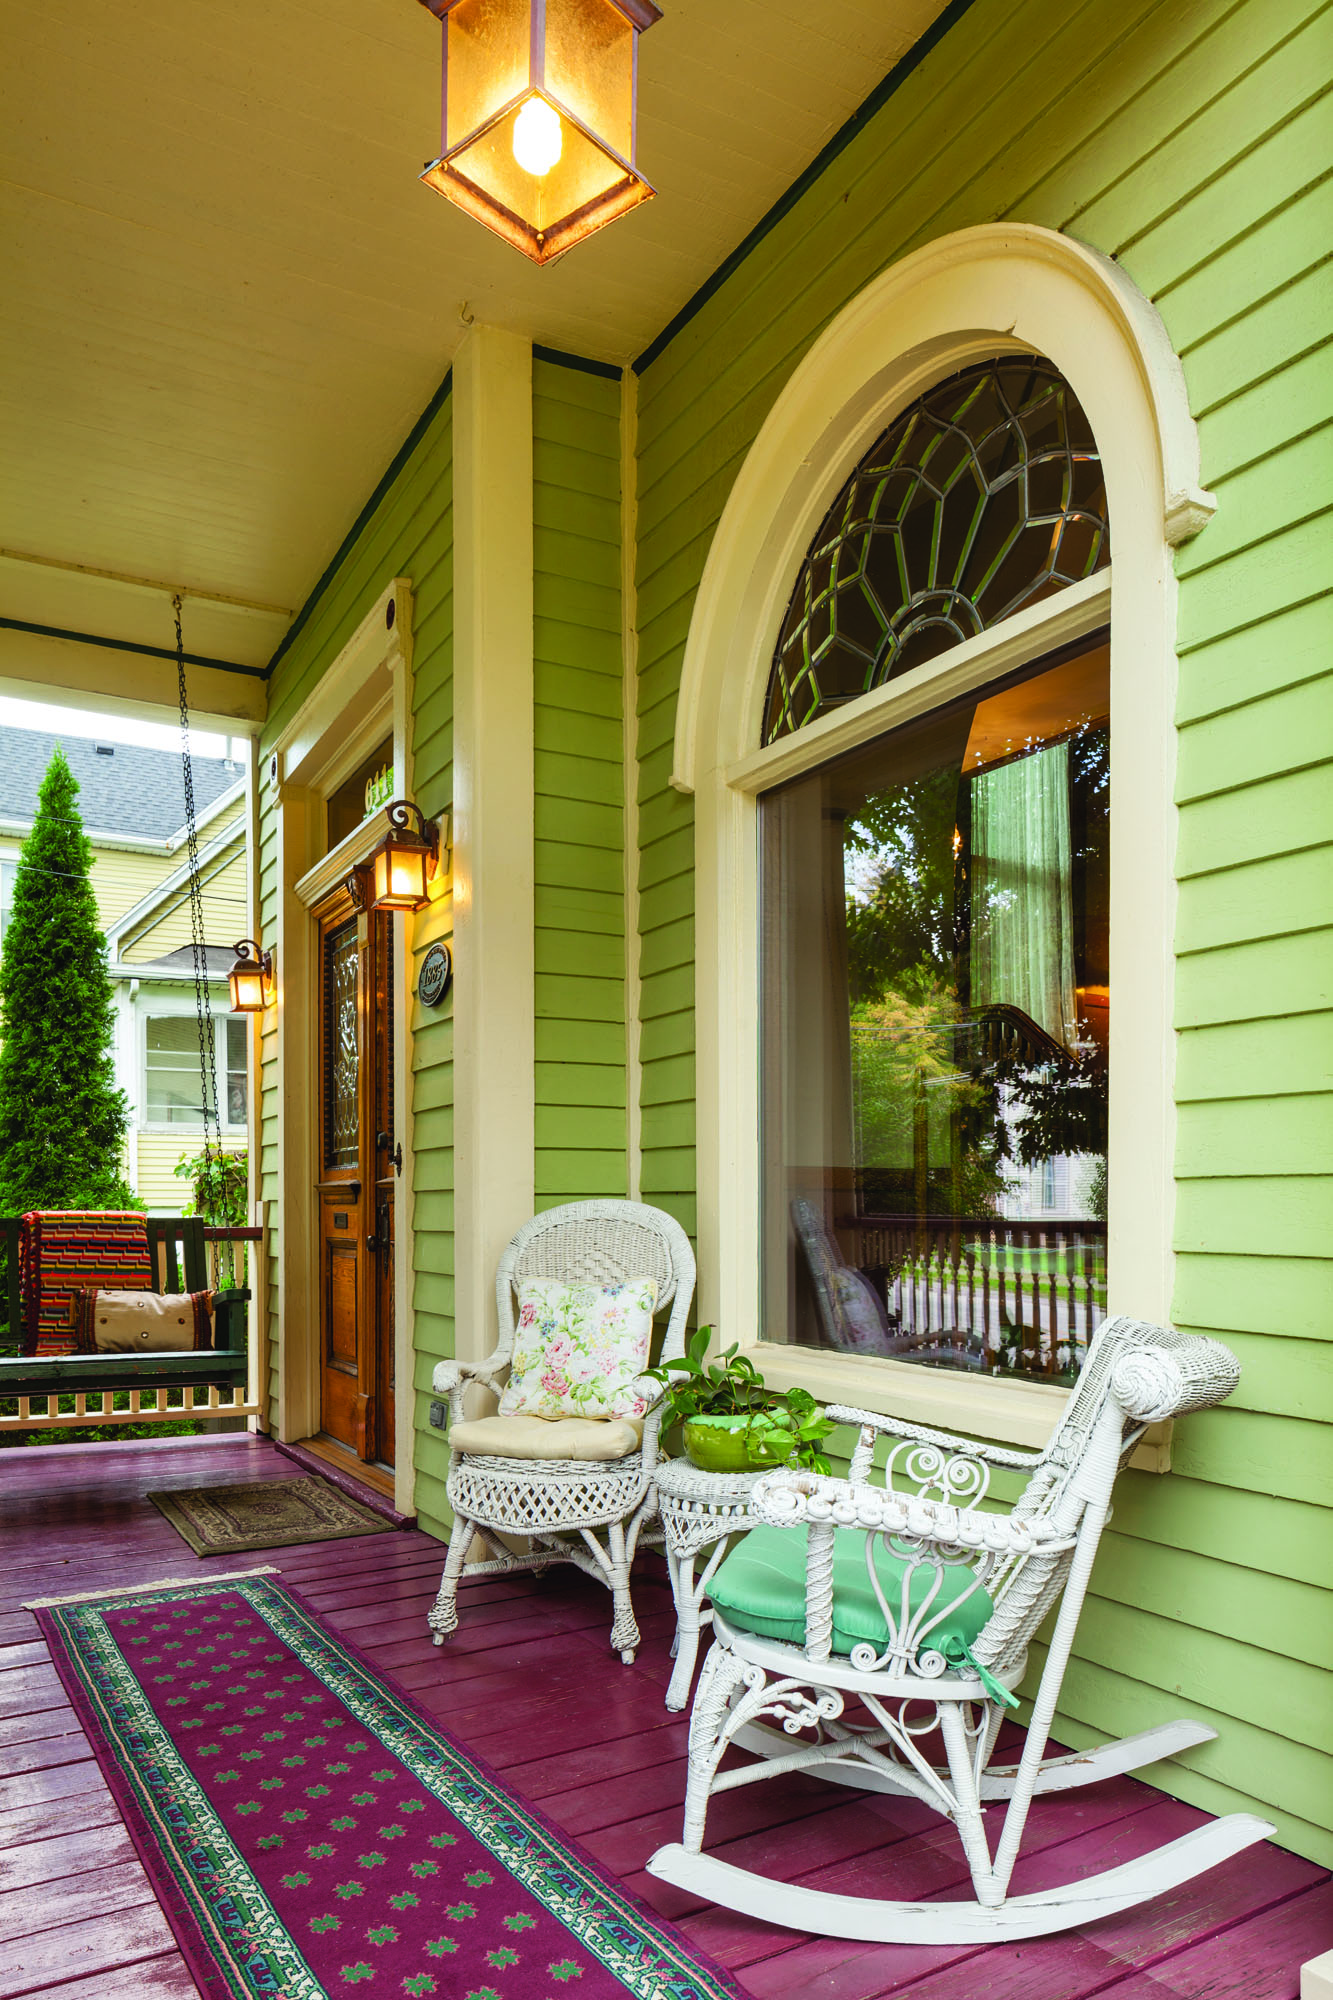 The wide front porch is a favorite spot; children love the porch swing, a replacement made to replicate the original seen in old photographs.